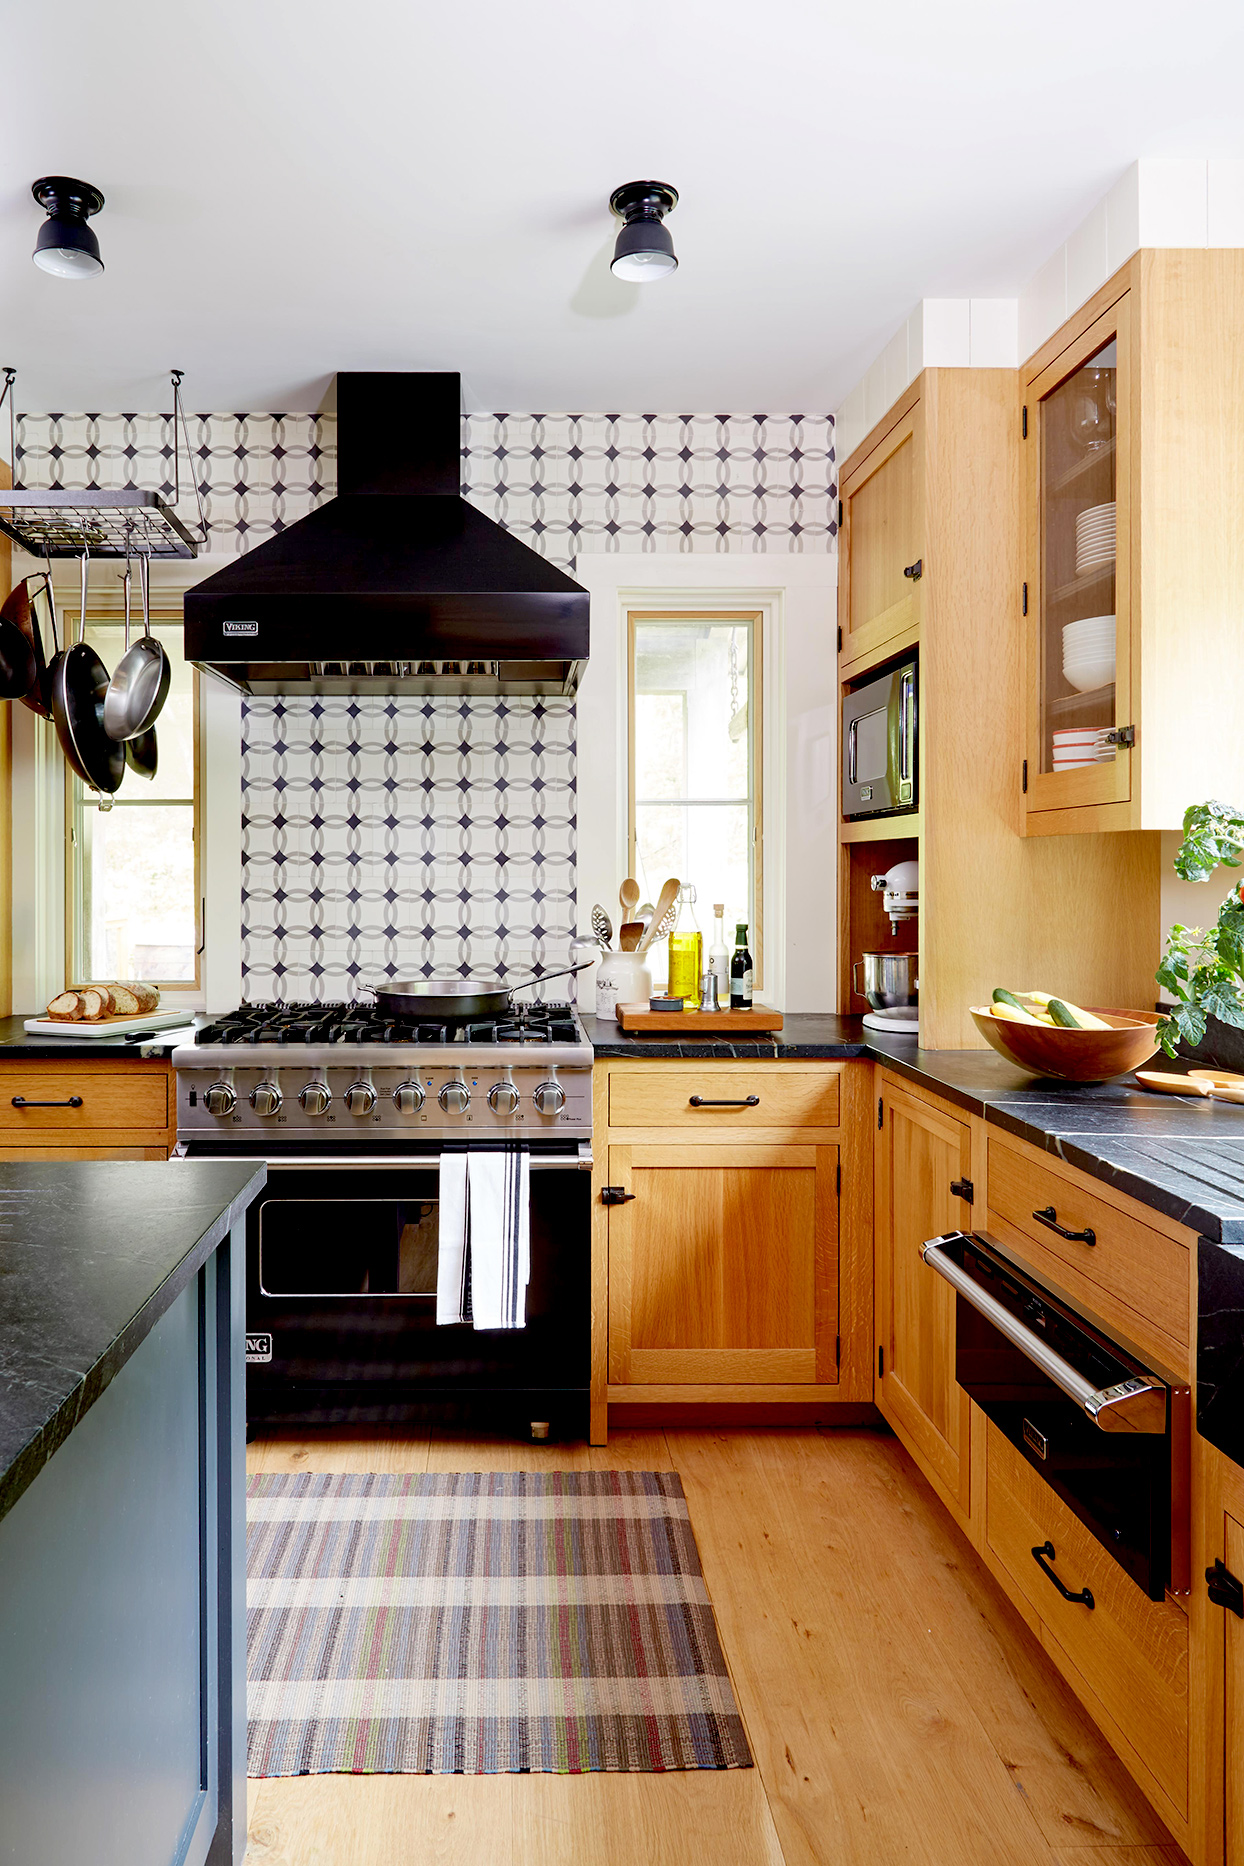 Kitchen with wooden cabinets and geometric wallpaper